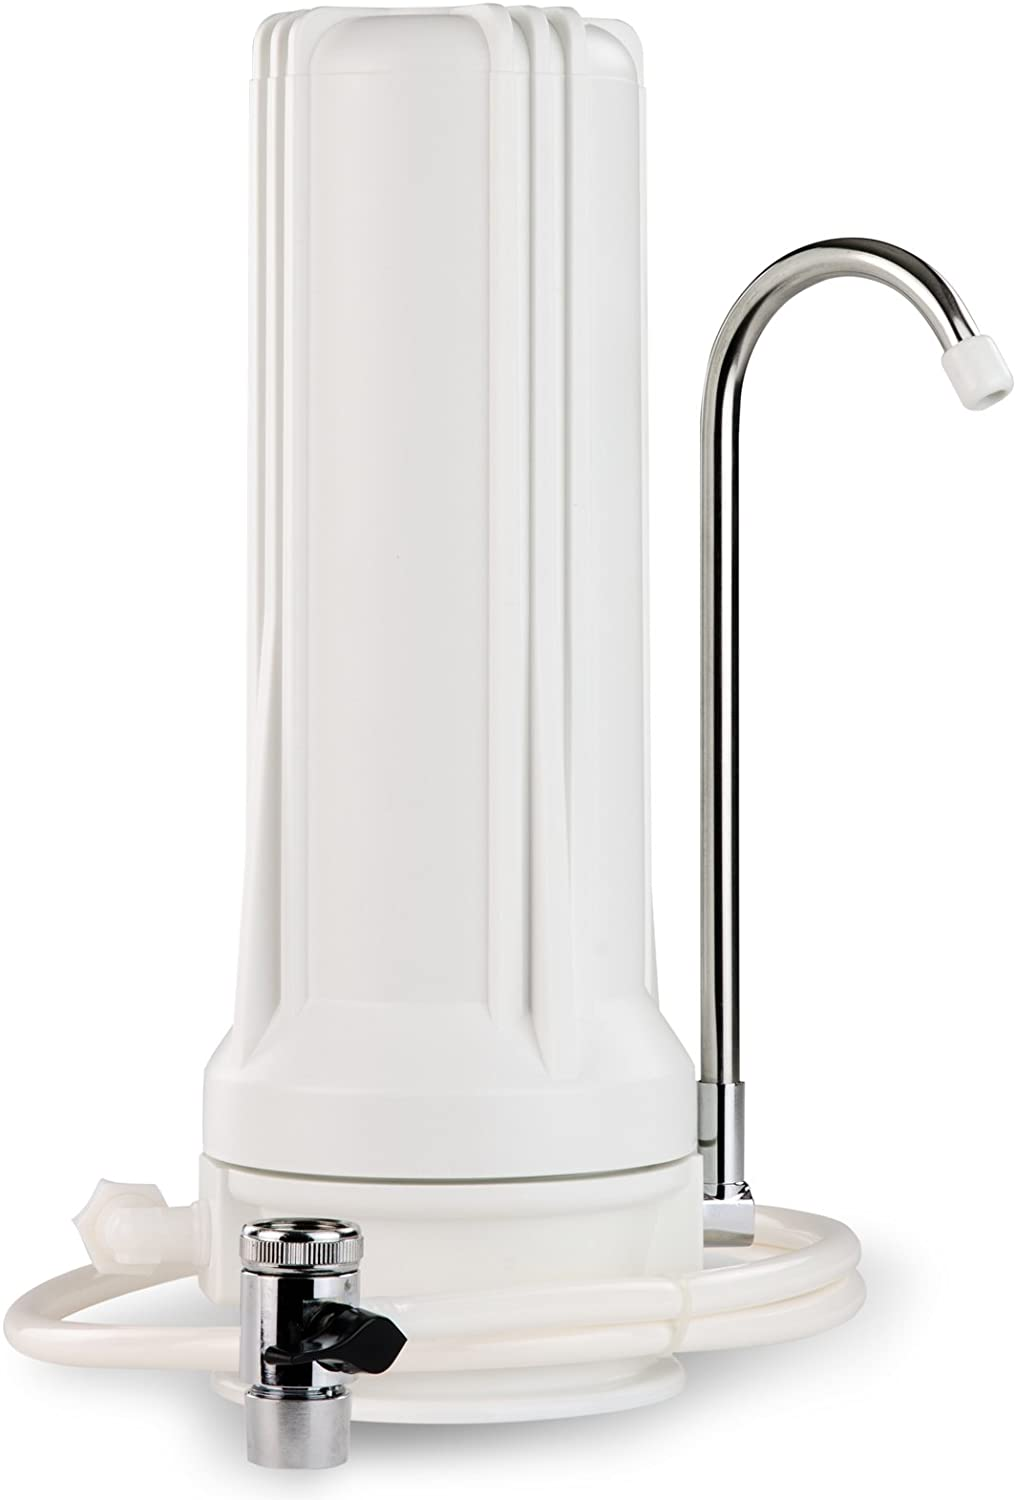 iSpring CKC1 Countertop Drinking Water Filtration System